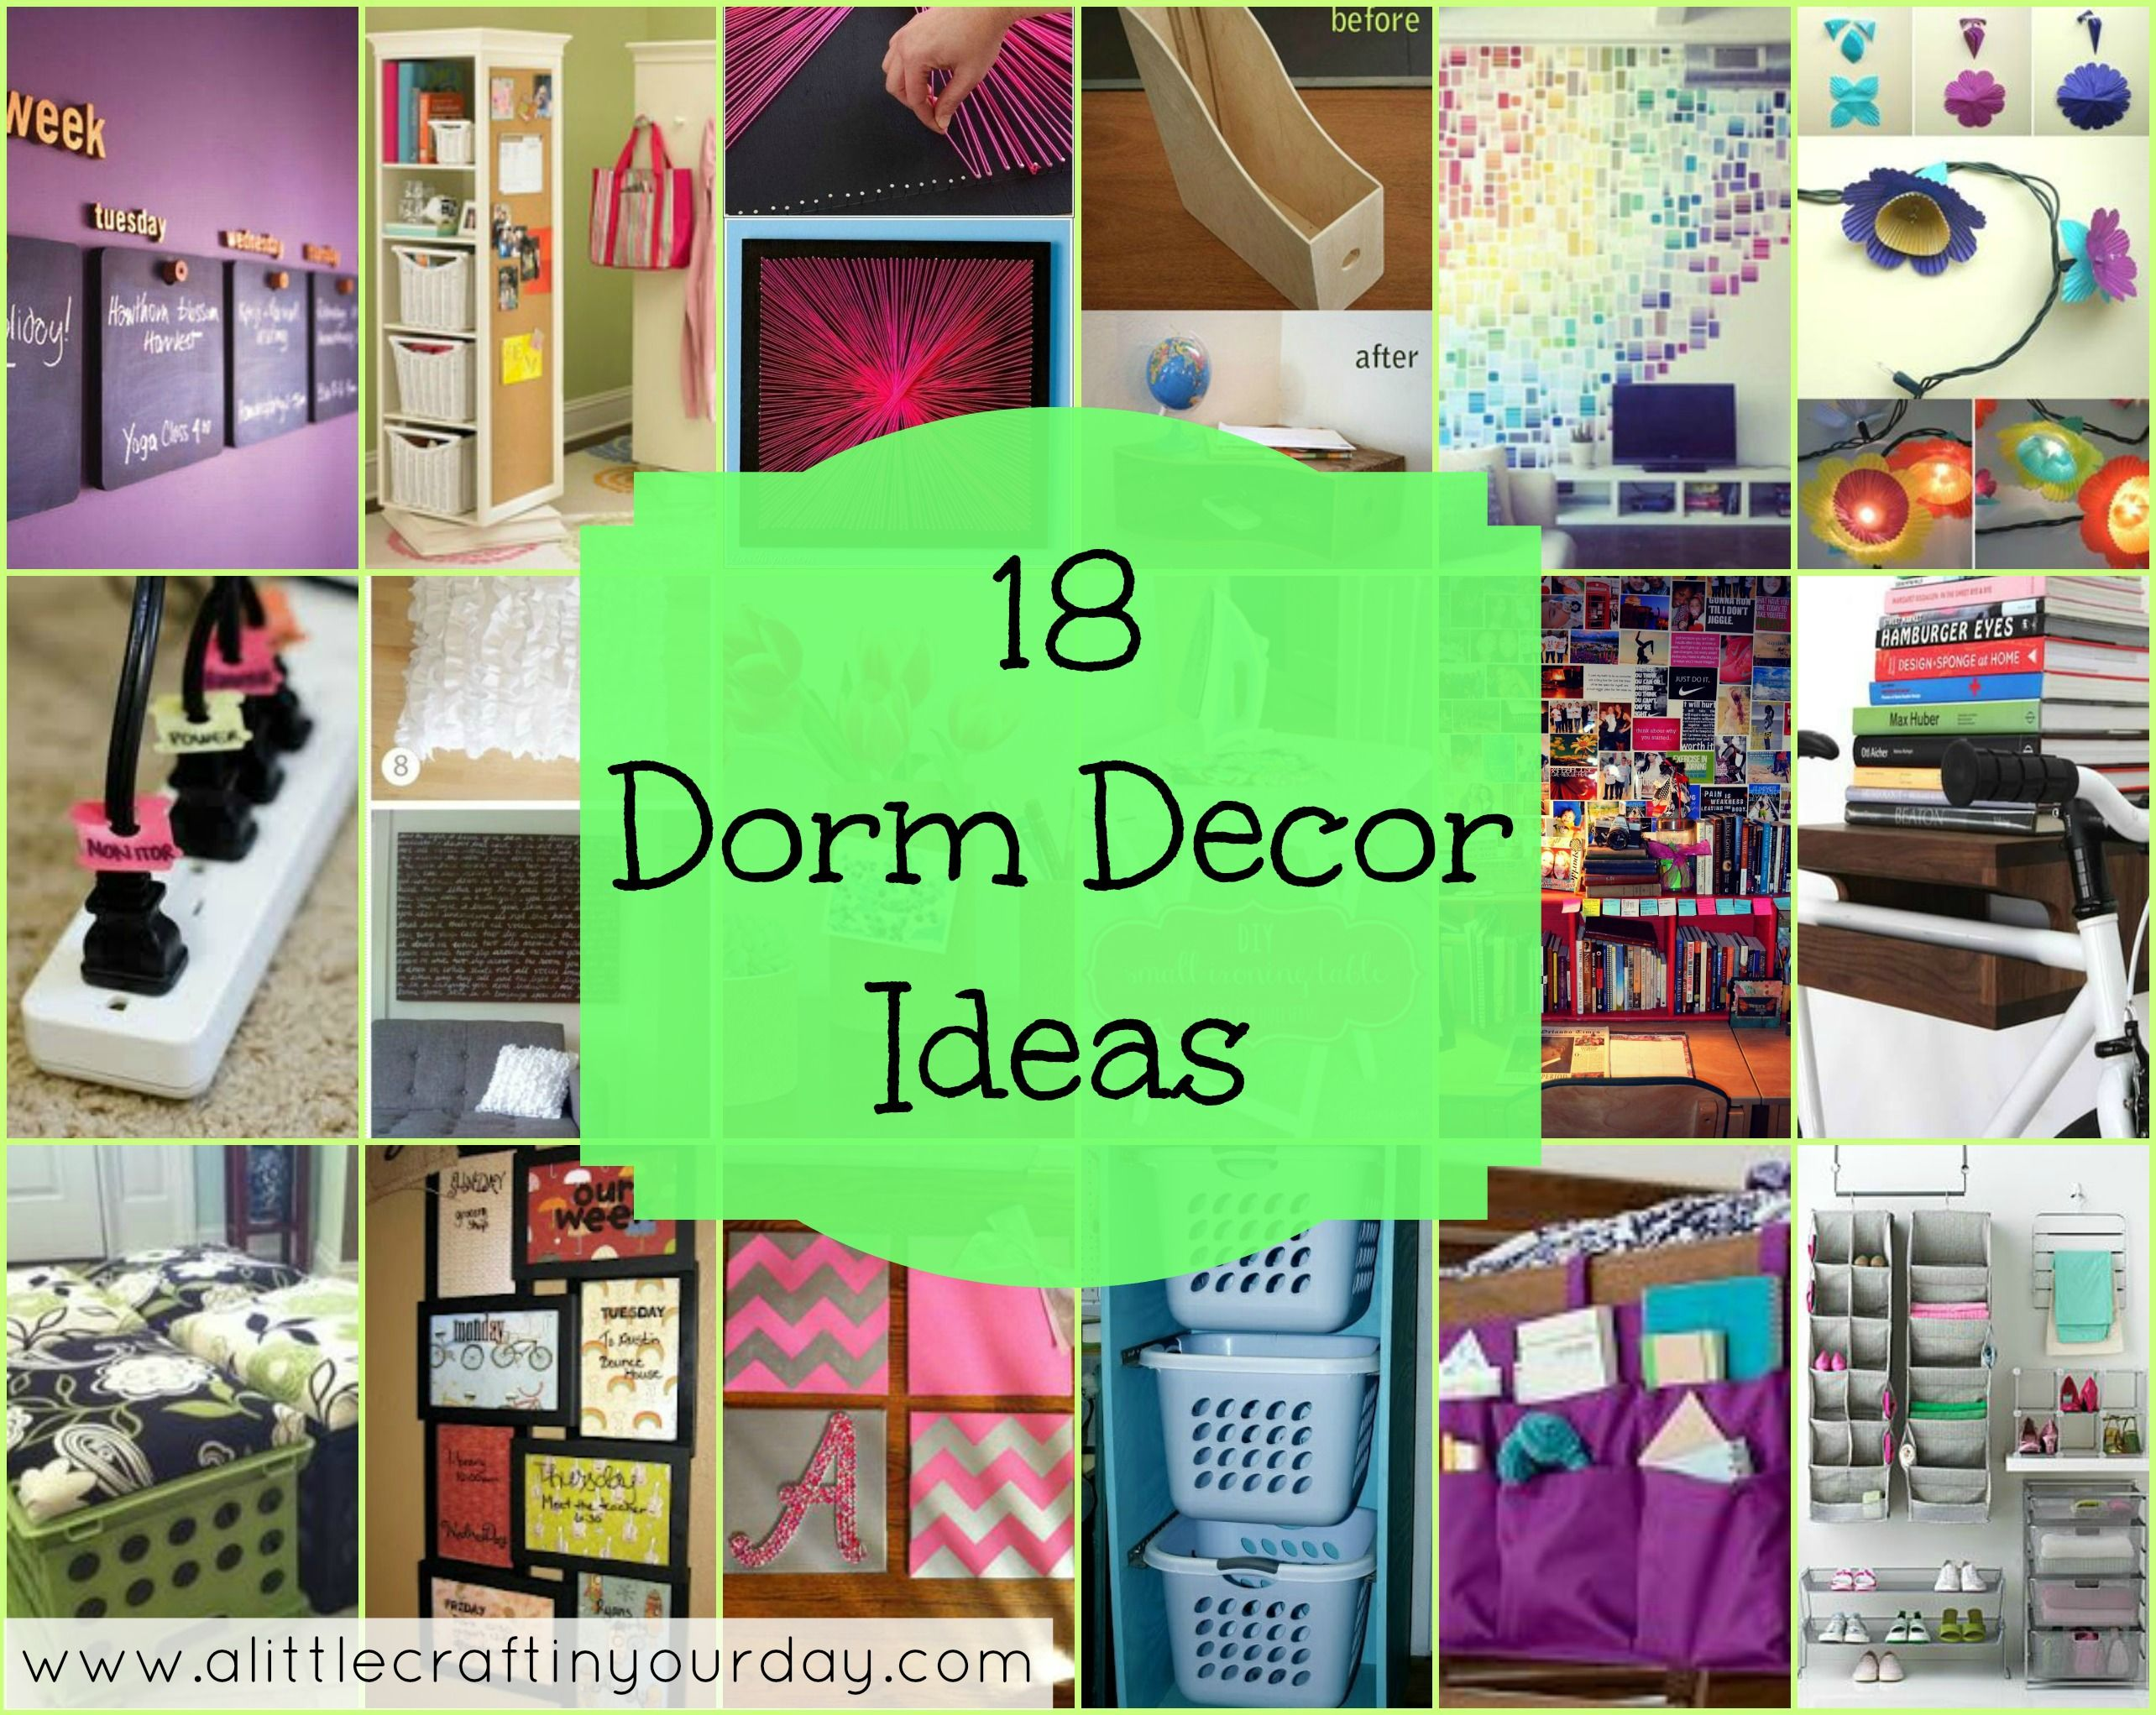 Dorm Room Themes on Pinterest  Living Room Kitchen Twin Xl Bedding and London Bedroom Themes